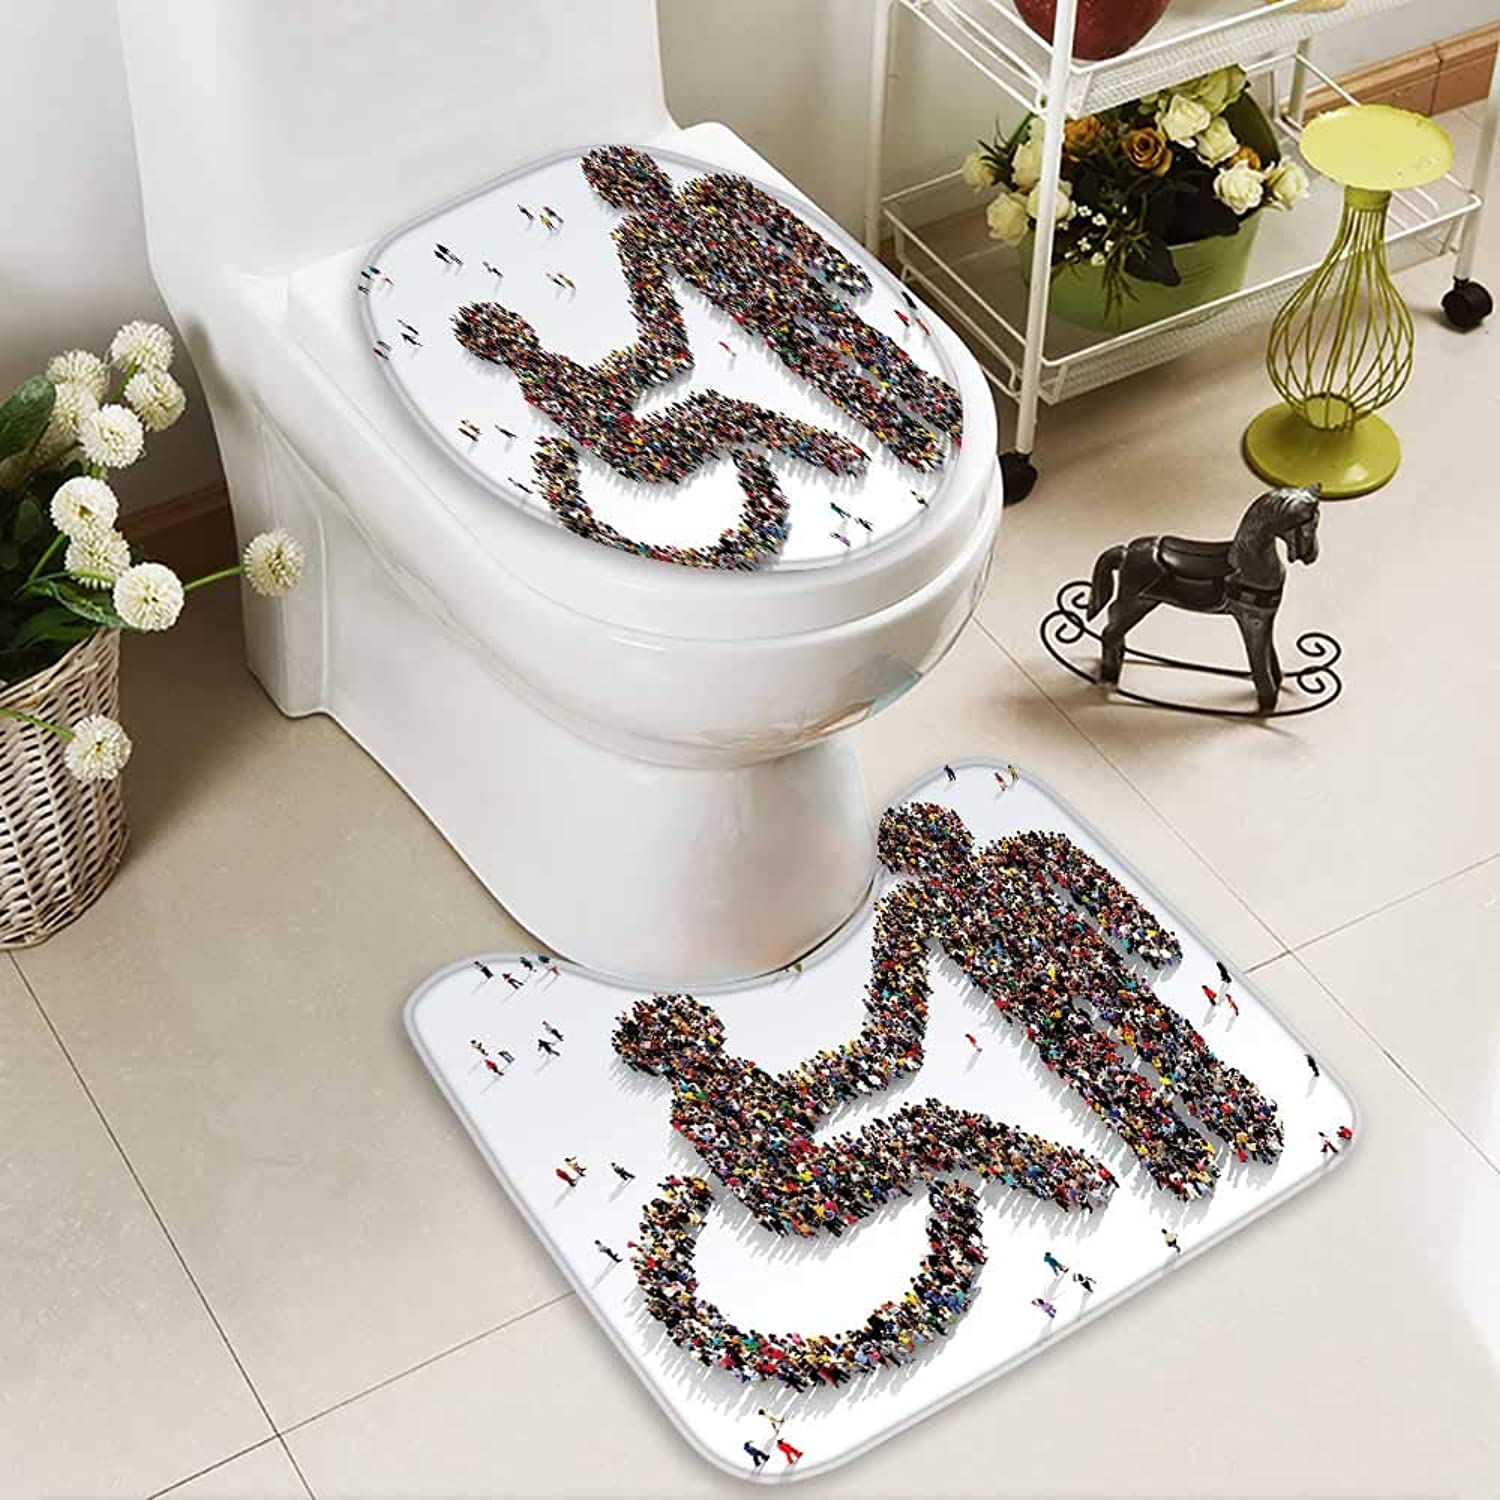 Bathroom Non-Slip Floor Mat Large and Diverse Group of People seen from Above Gathered Together with High Absorbency